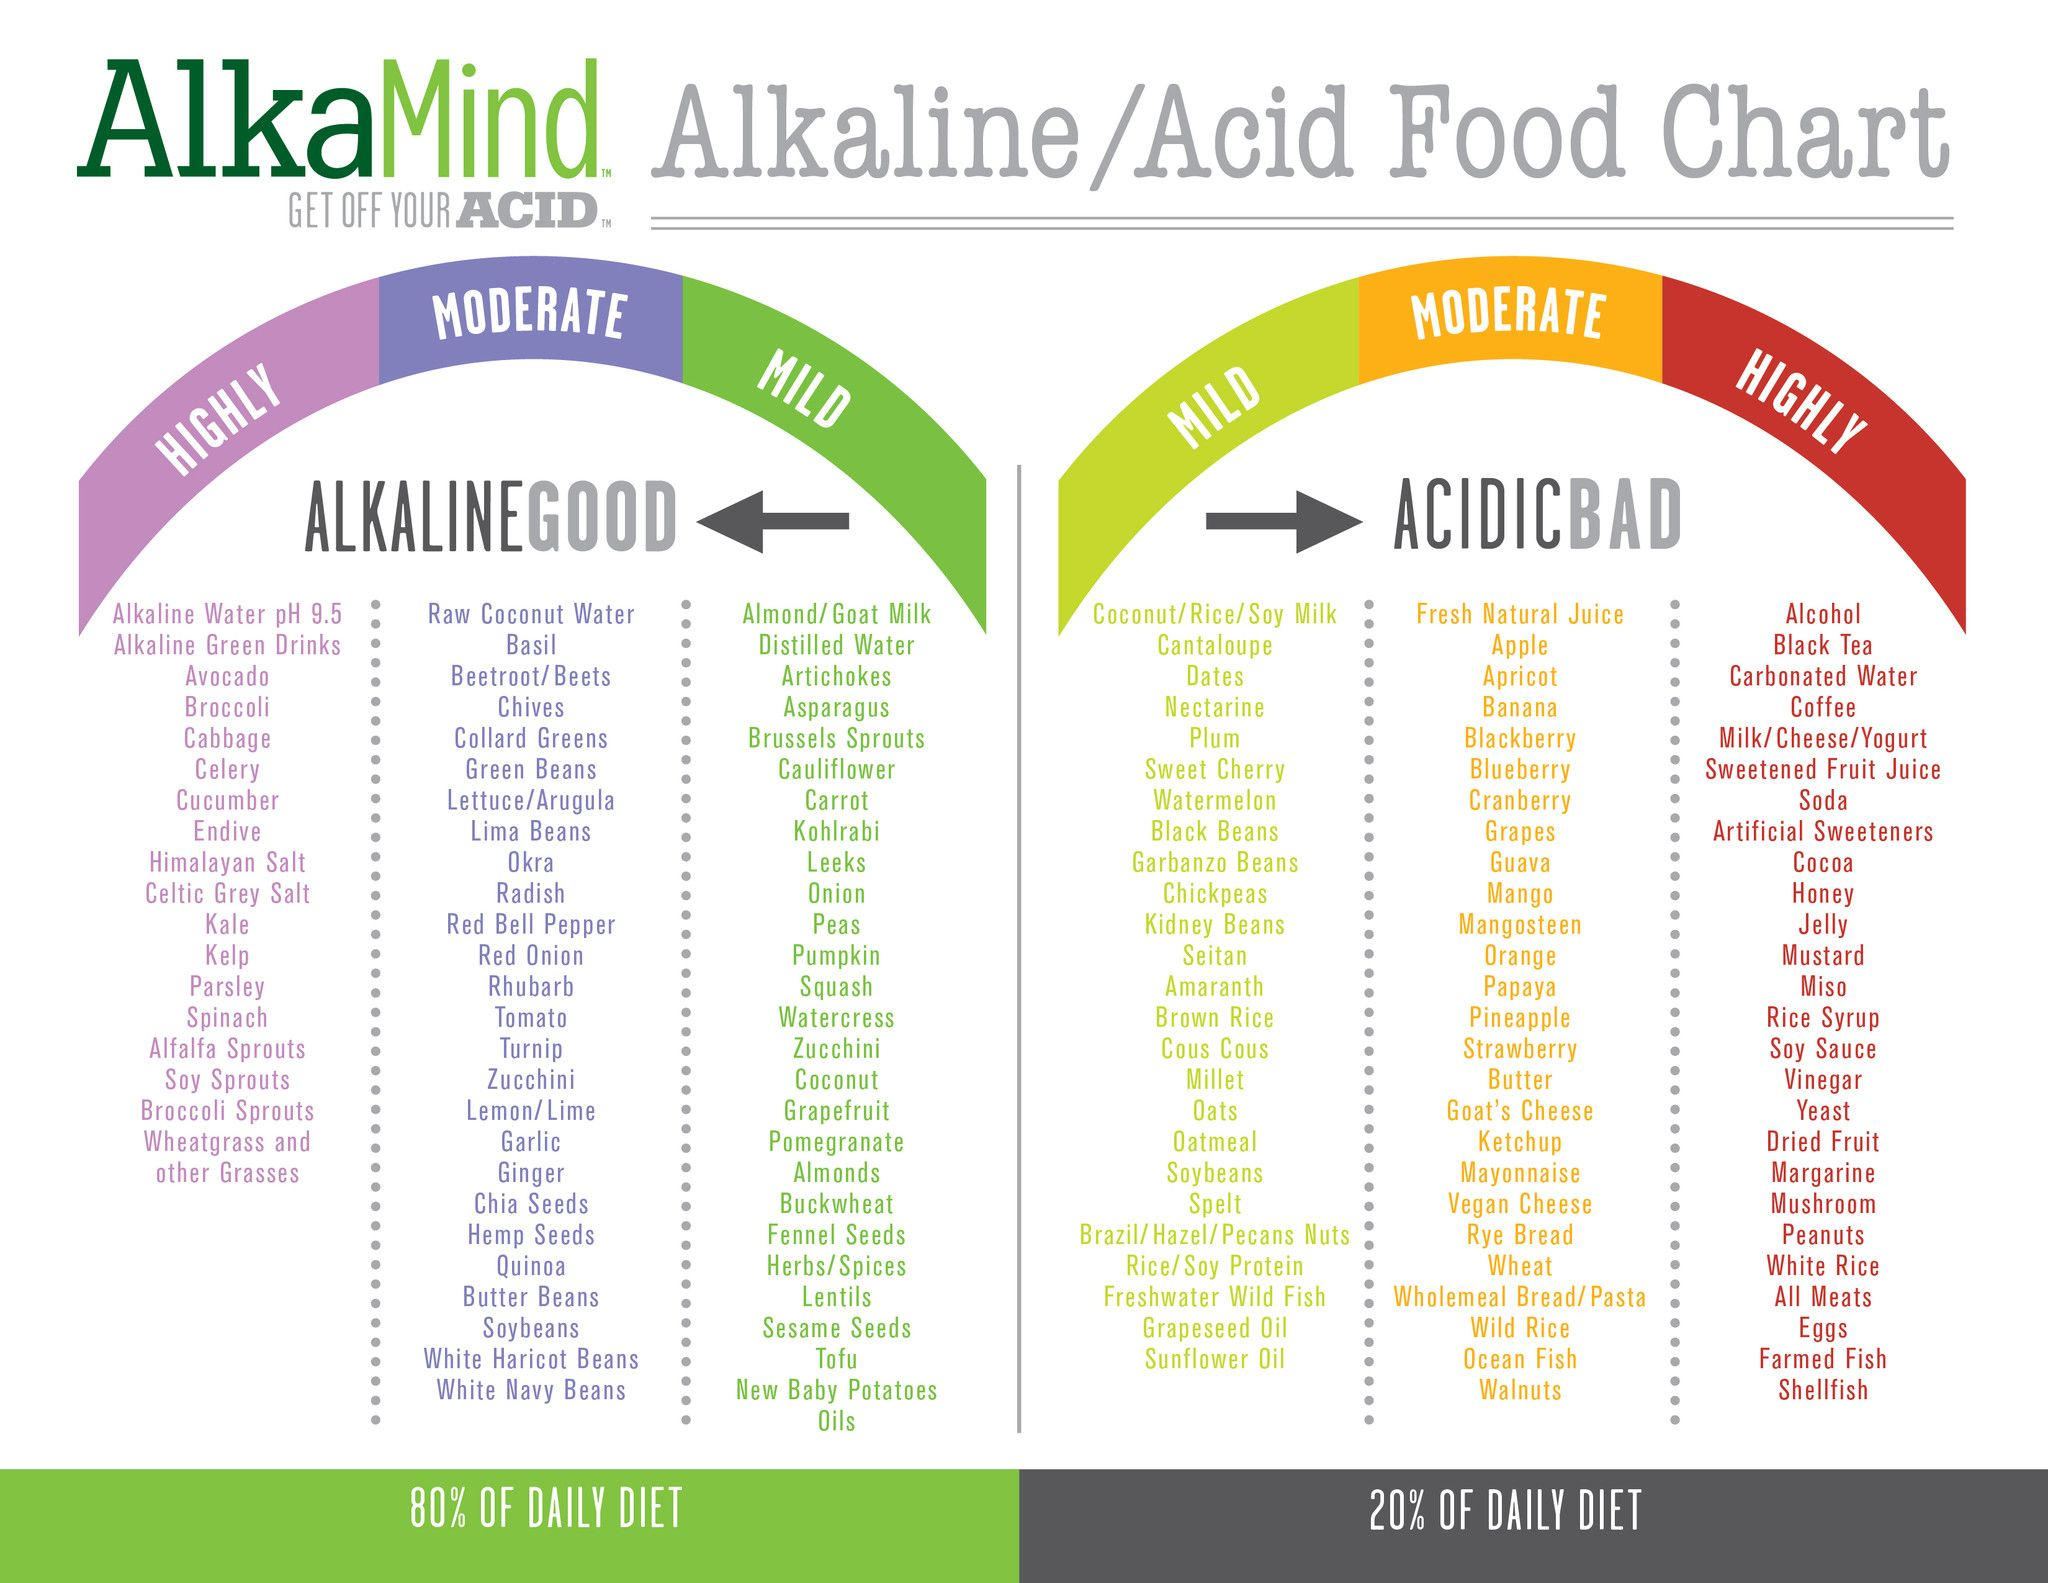 Alkaline foods vs acid foods health pinterest ph chart and food